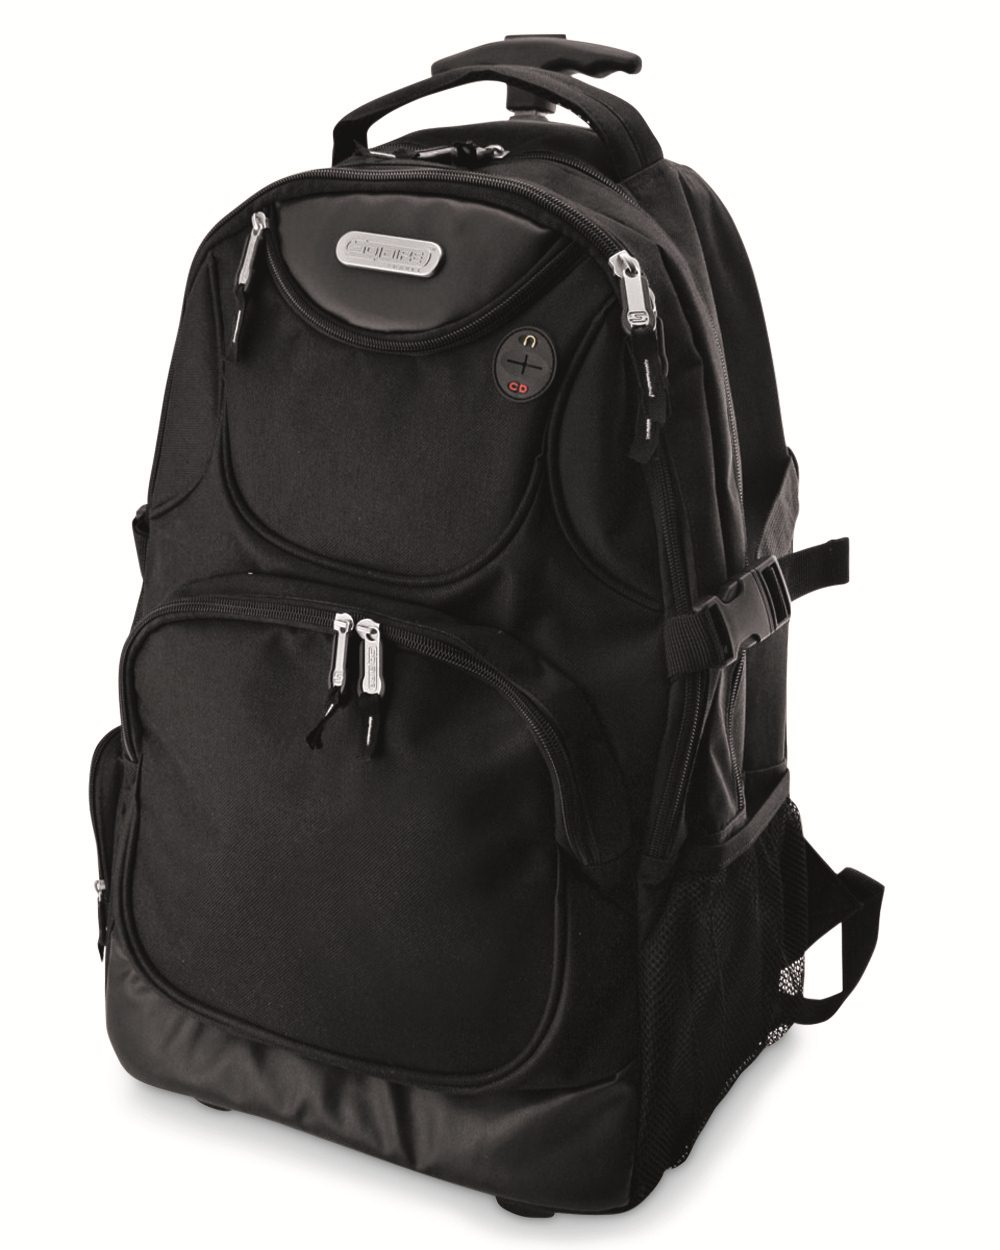 Valubag Rolling backpack - VB0059